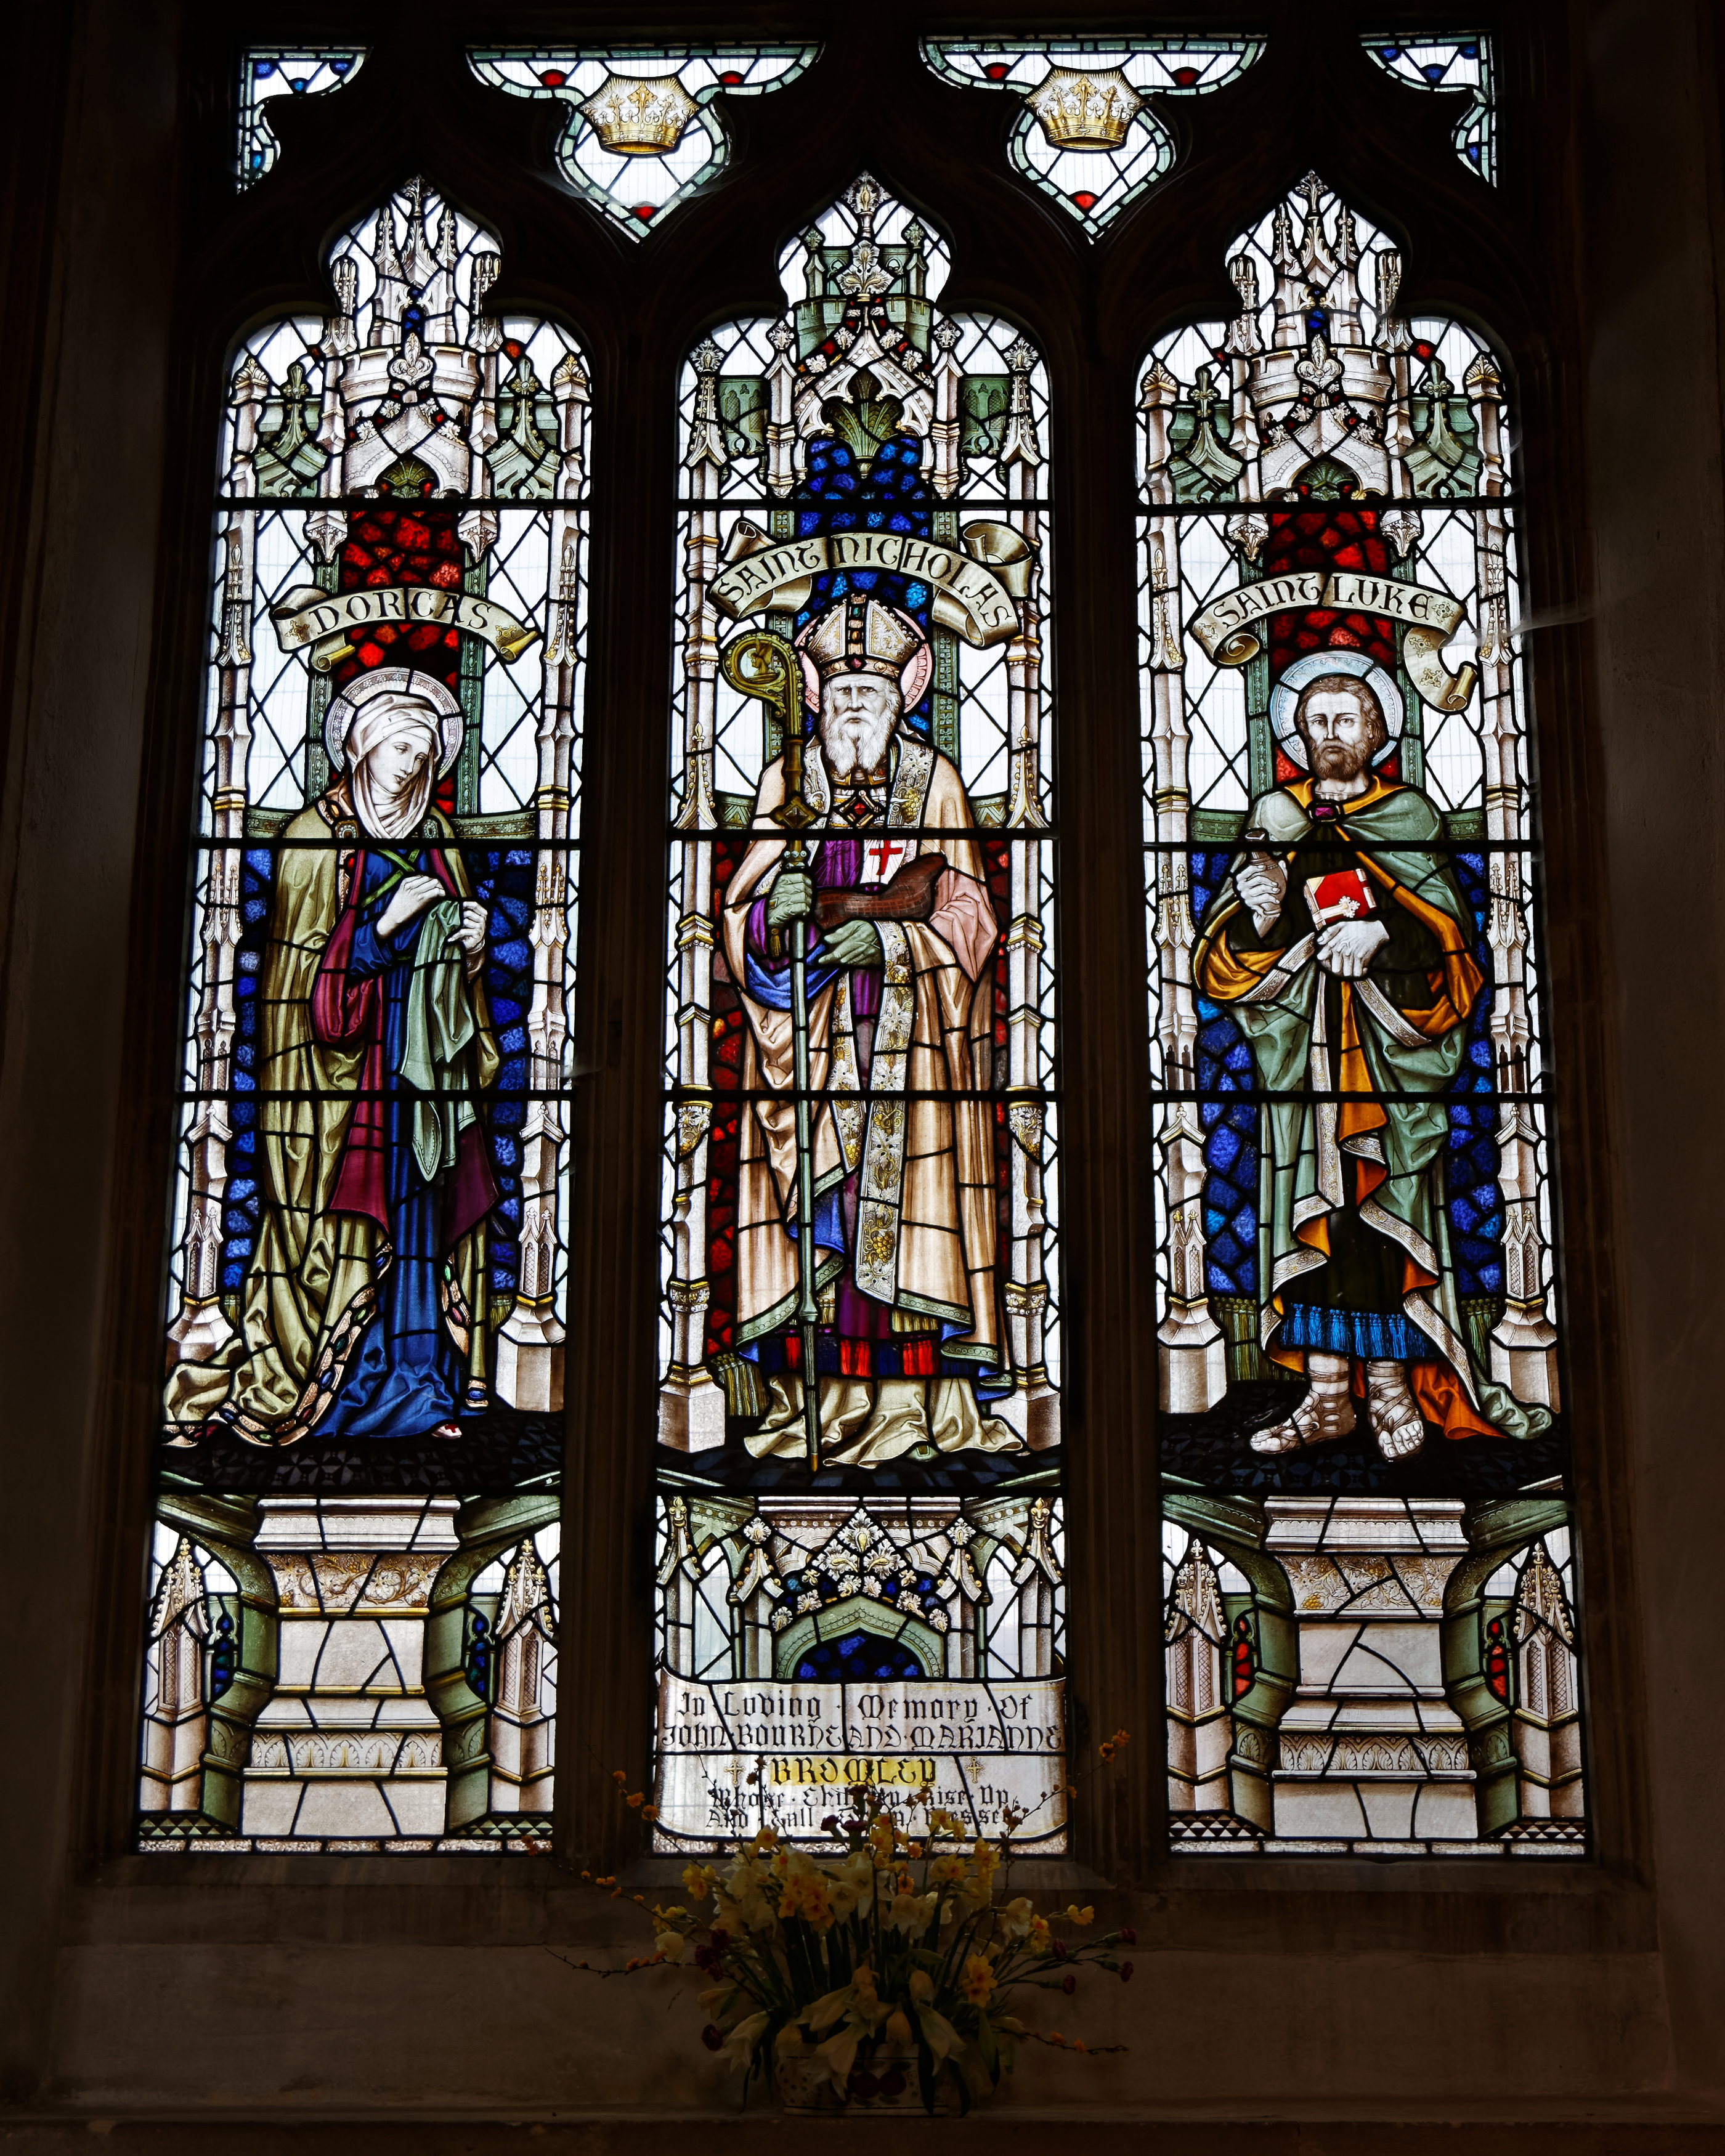 FileCastle Hedingham St Nicholas Church Essex England Stained Glass Window